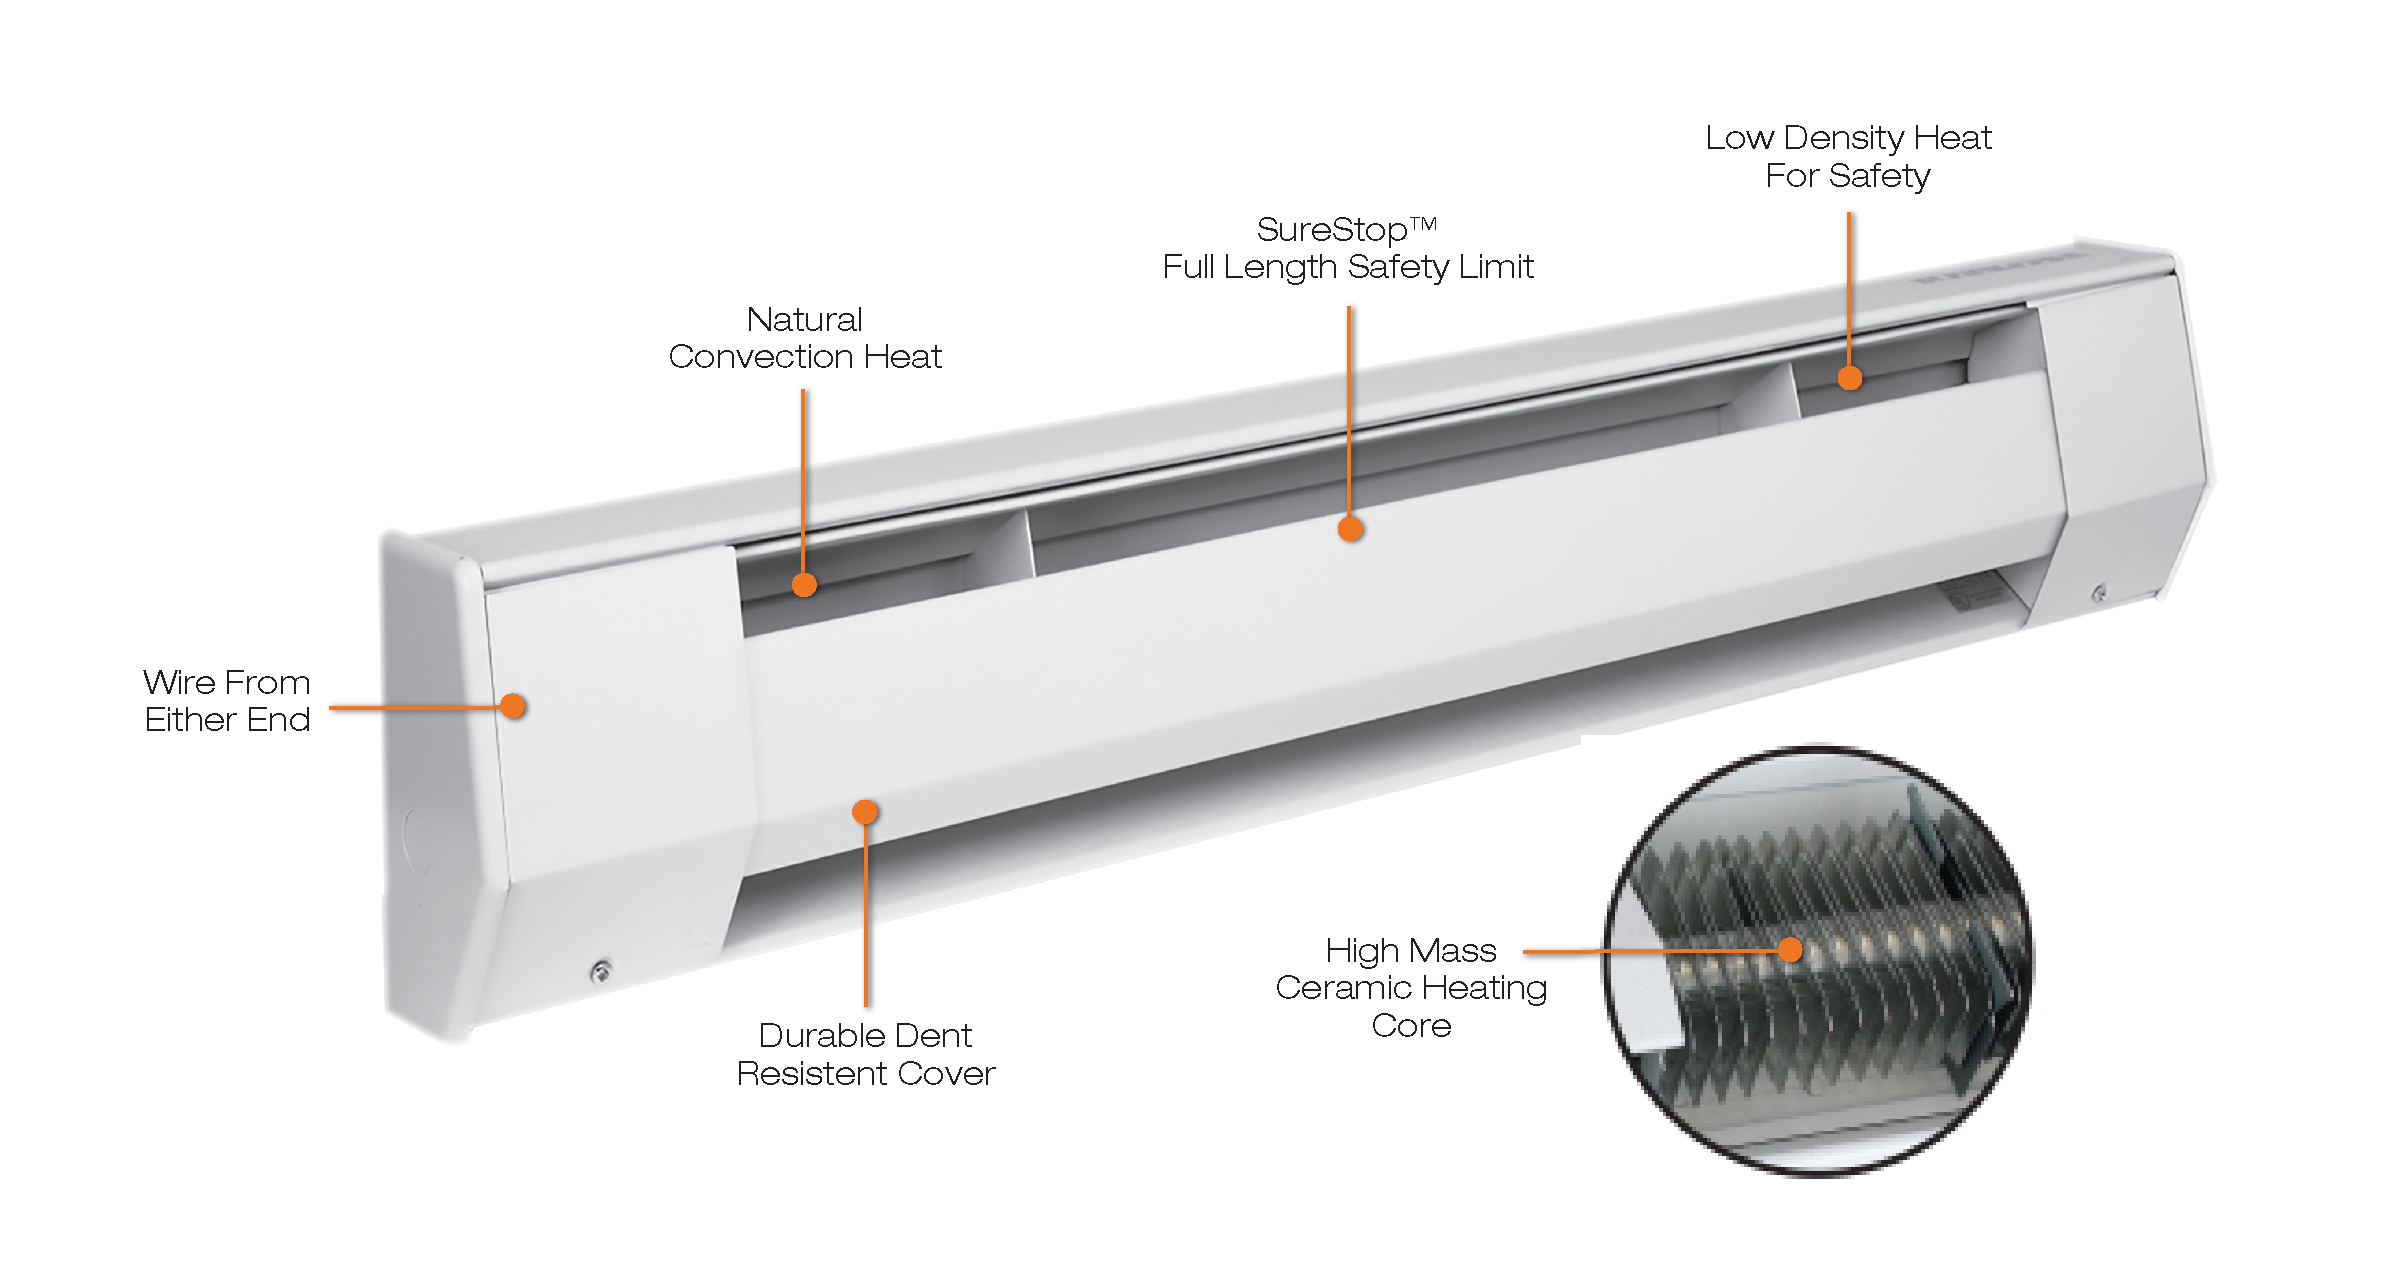 Baseboard Heater Wiring Diagram For 240